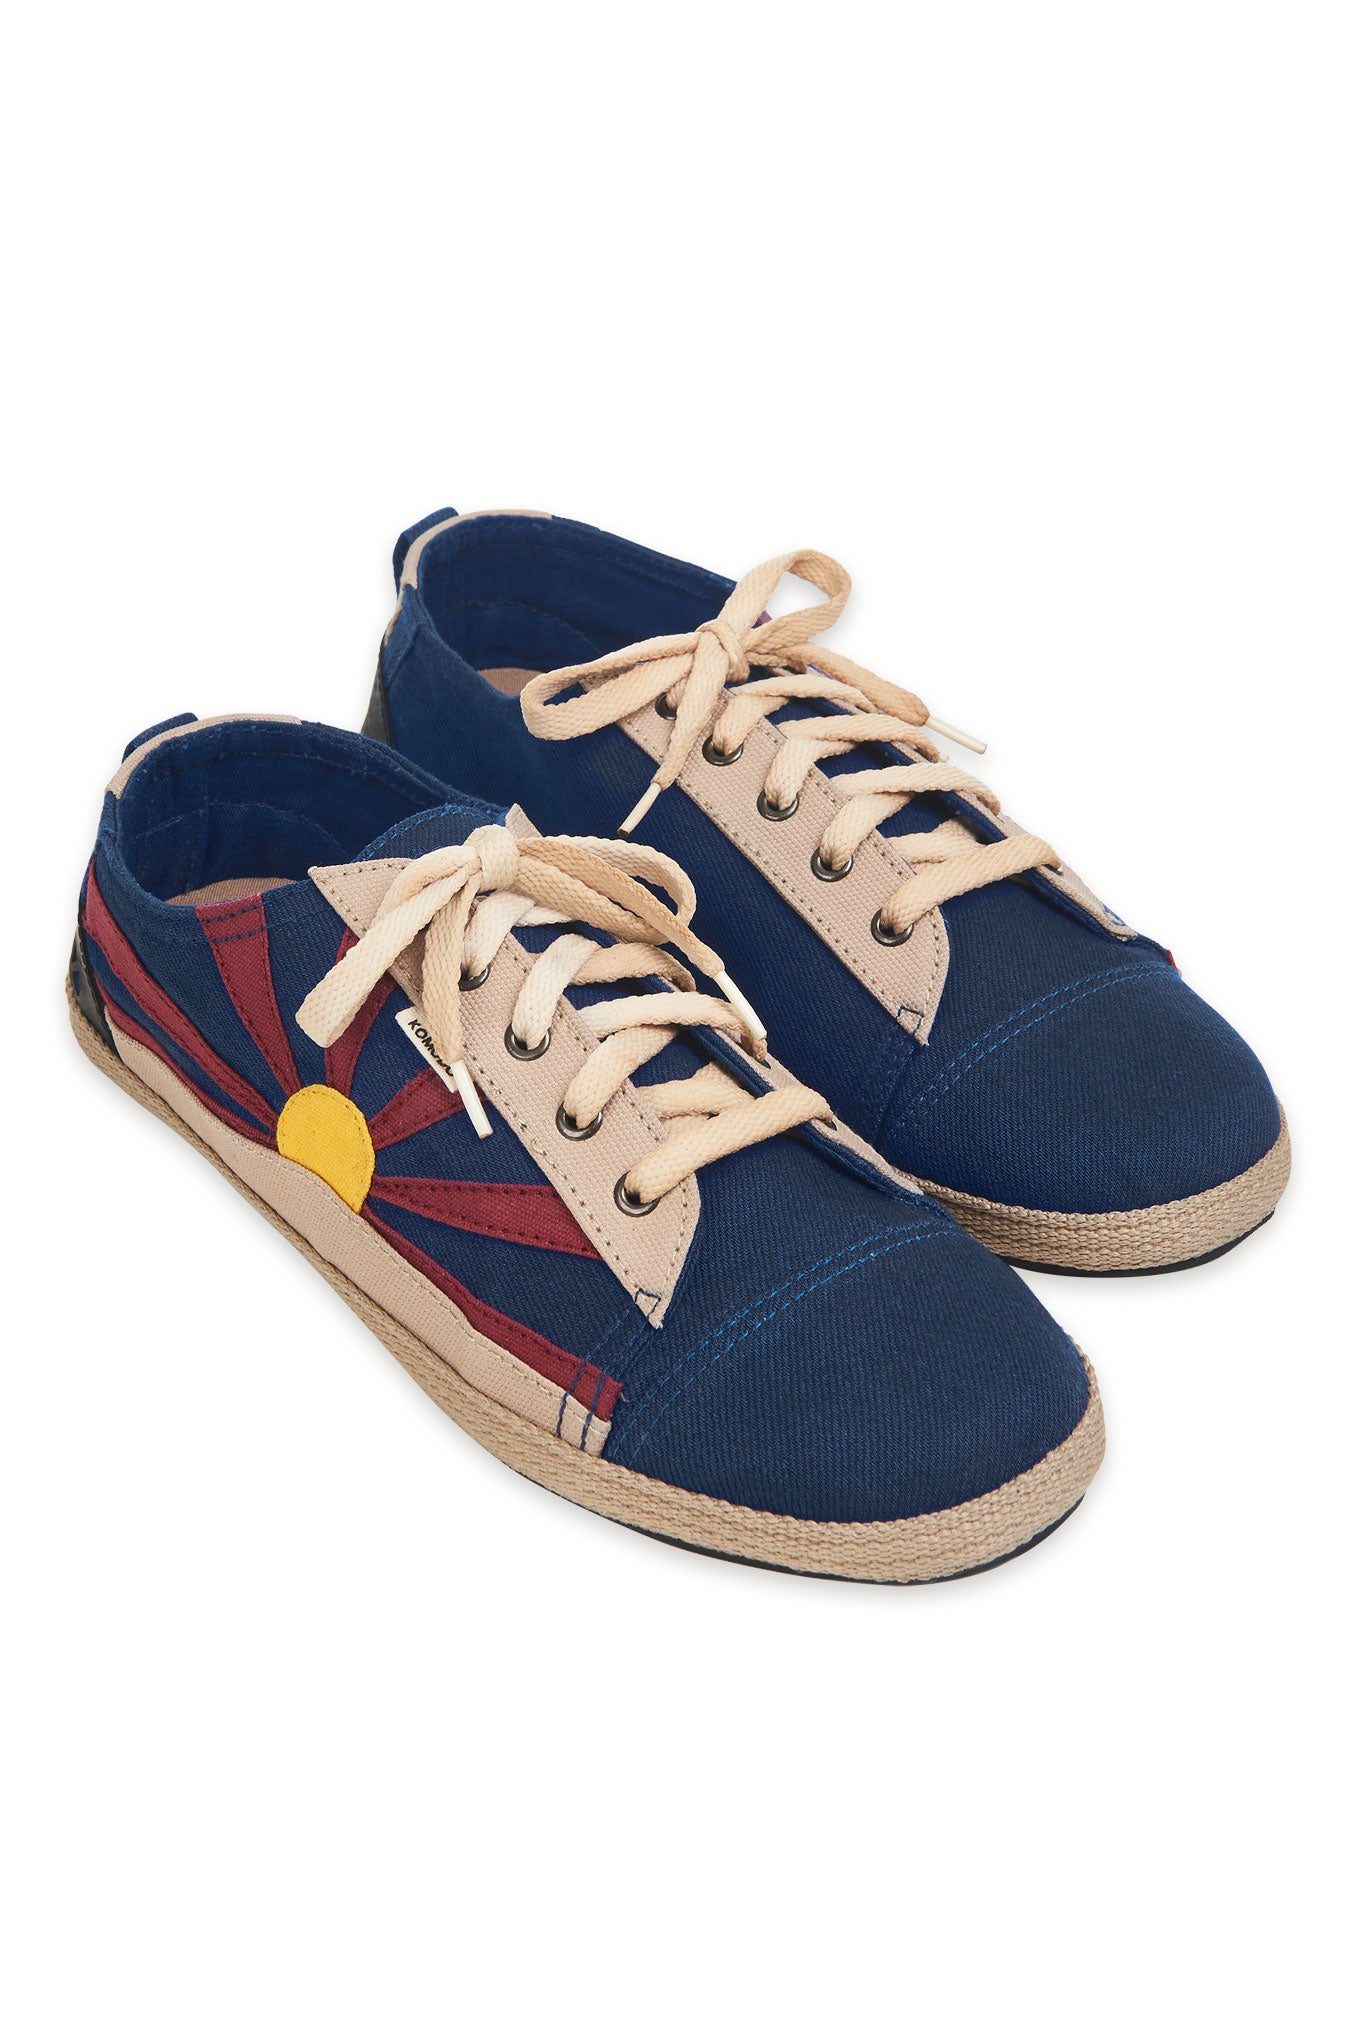 FREE TIBET Mens Shoe Navy